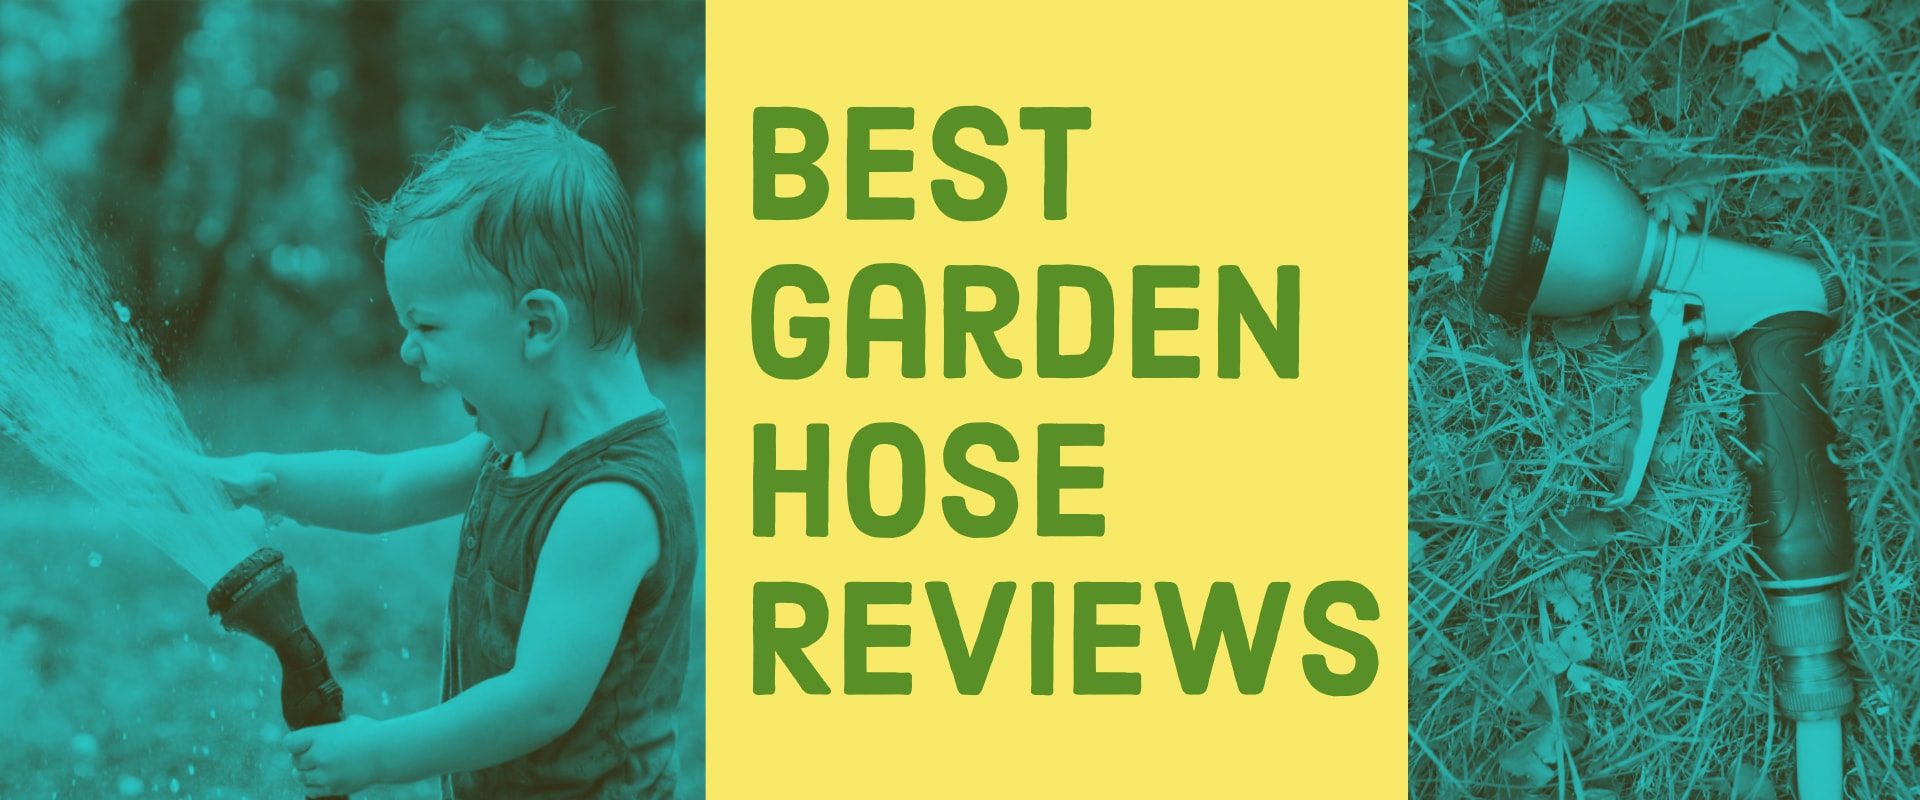 10 Best Garden Hose 2020 Reviews, Ratings and Comparison